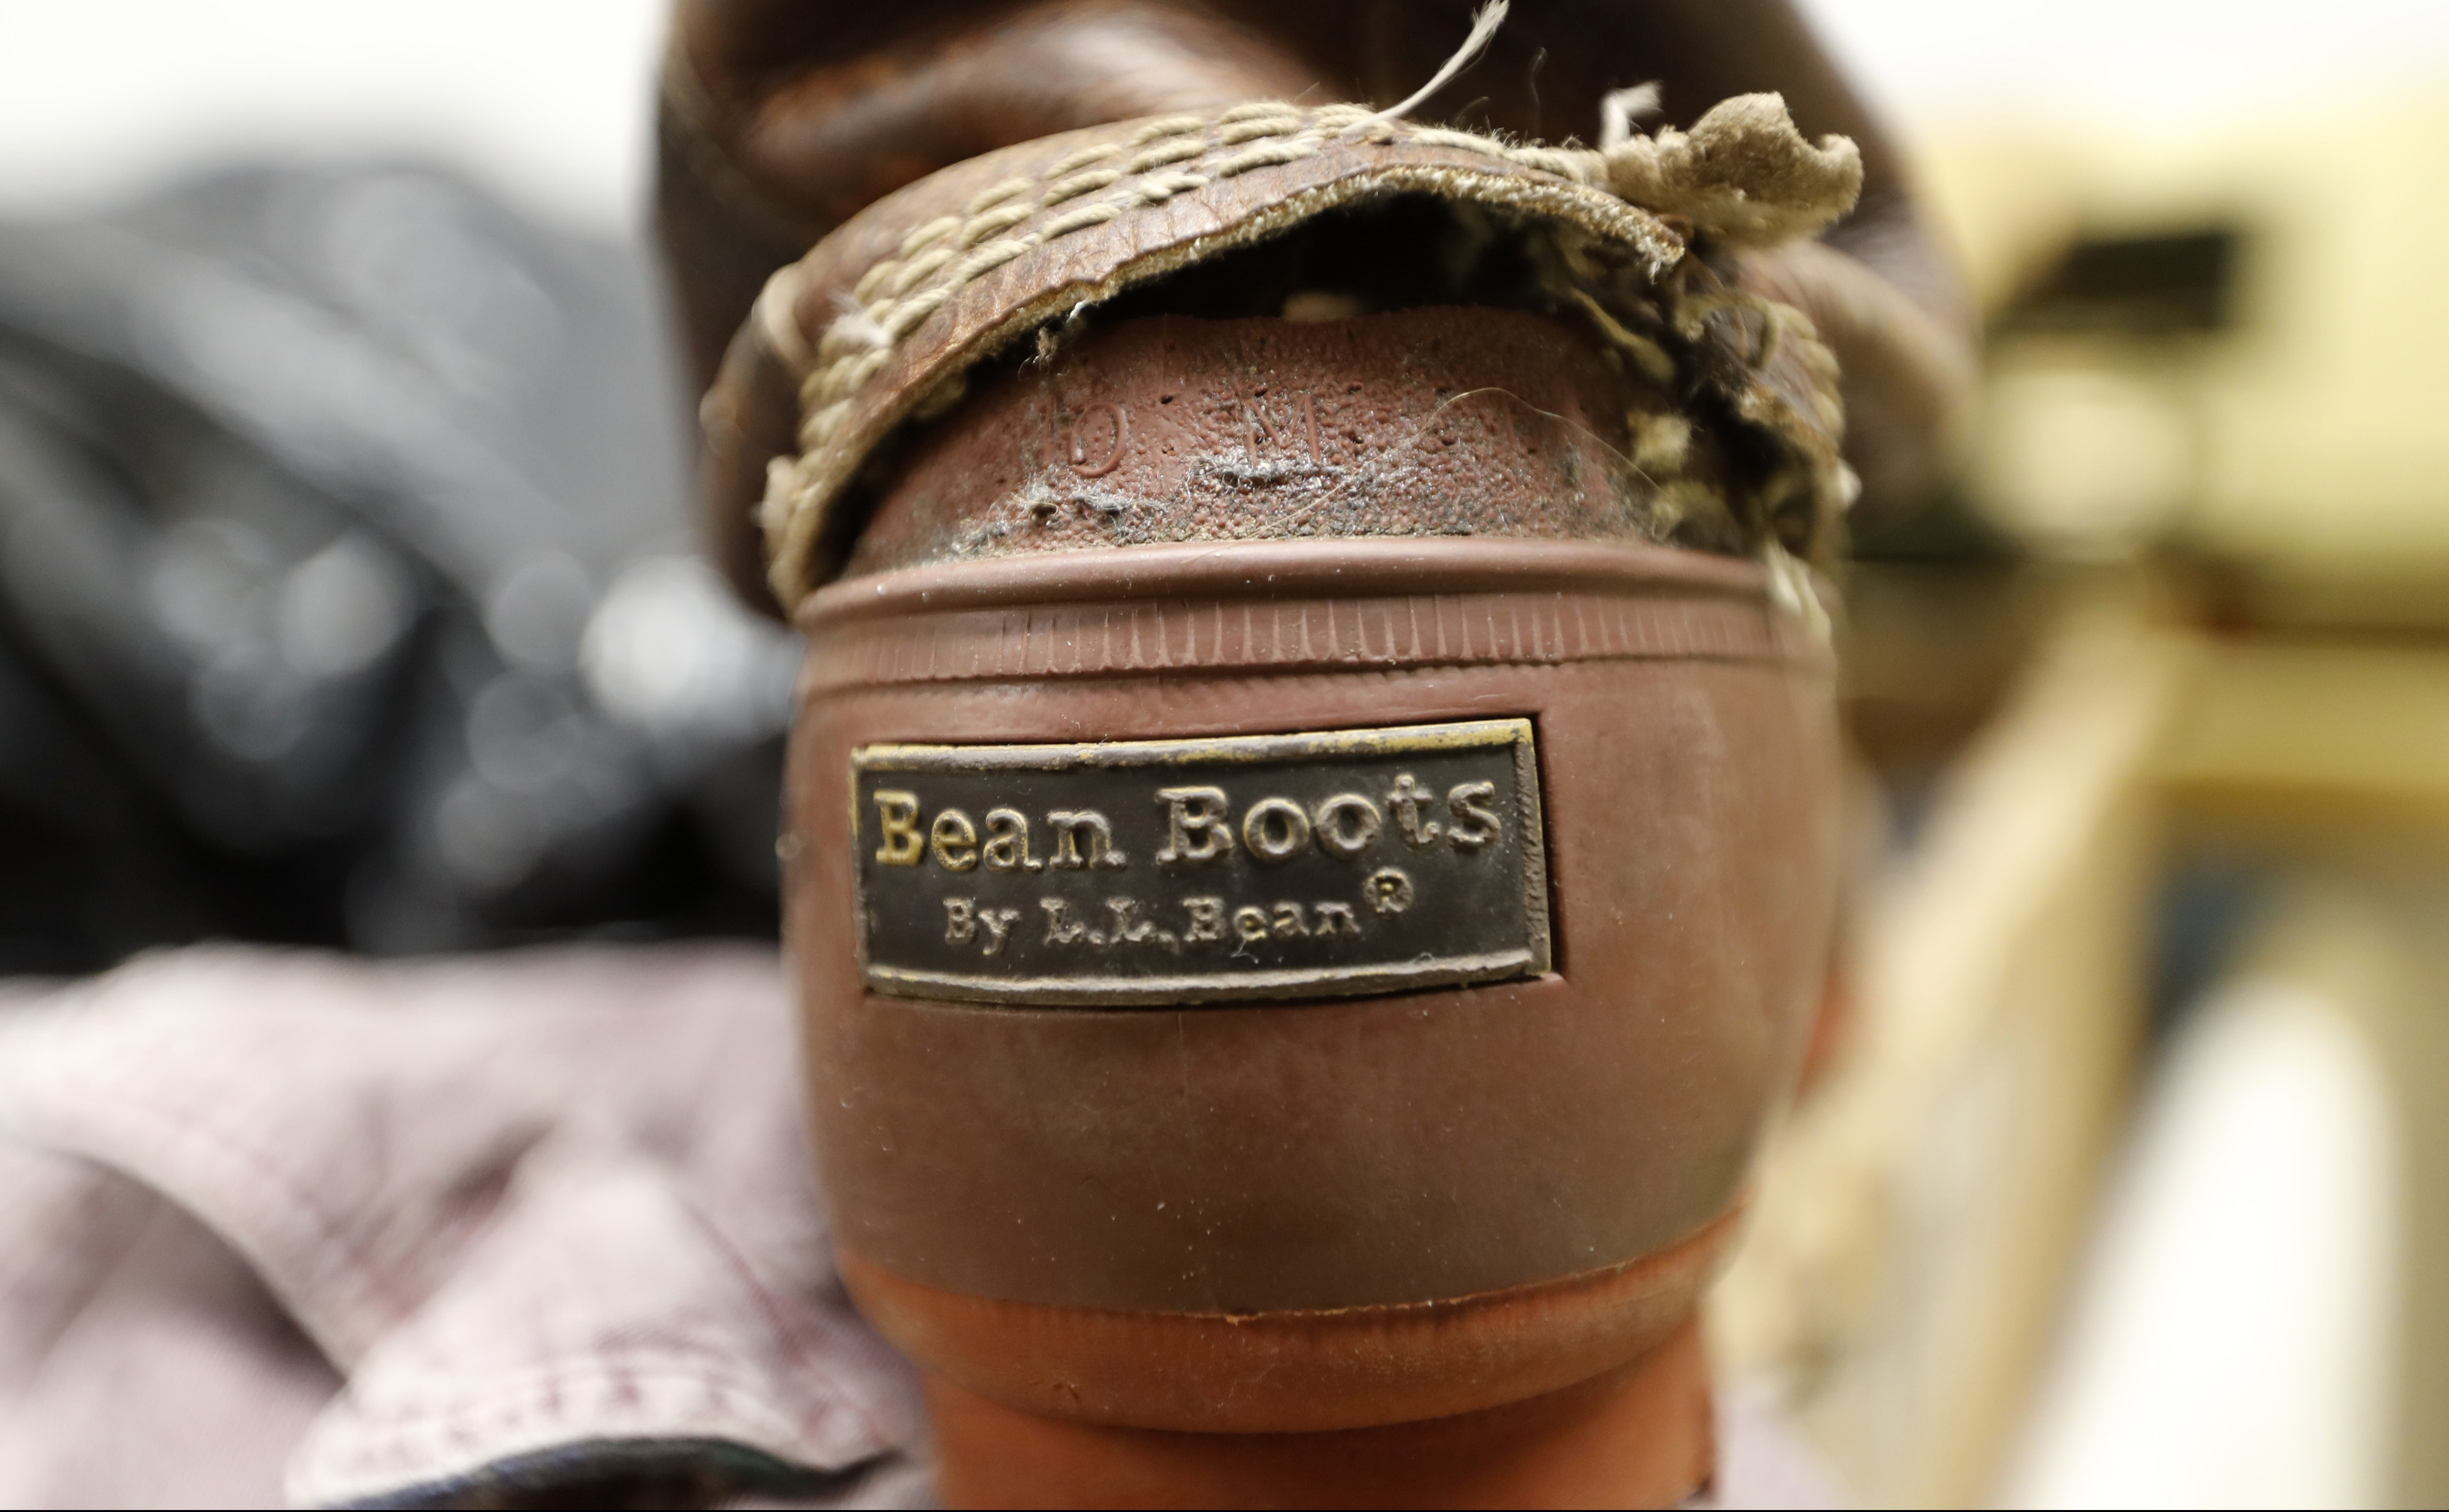 In this Friday, Feb. 2, 2018 photo a Bean Boot is seen in the return bin at L.L. Bean retail store in Freeport, Maine. Although the company is changing its return policy it will always accept returns on products that have failed, such as this boot. (AP Photo/Robert F. Bukaty)